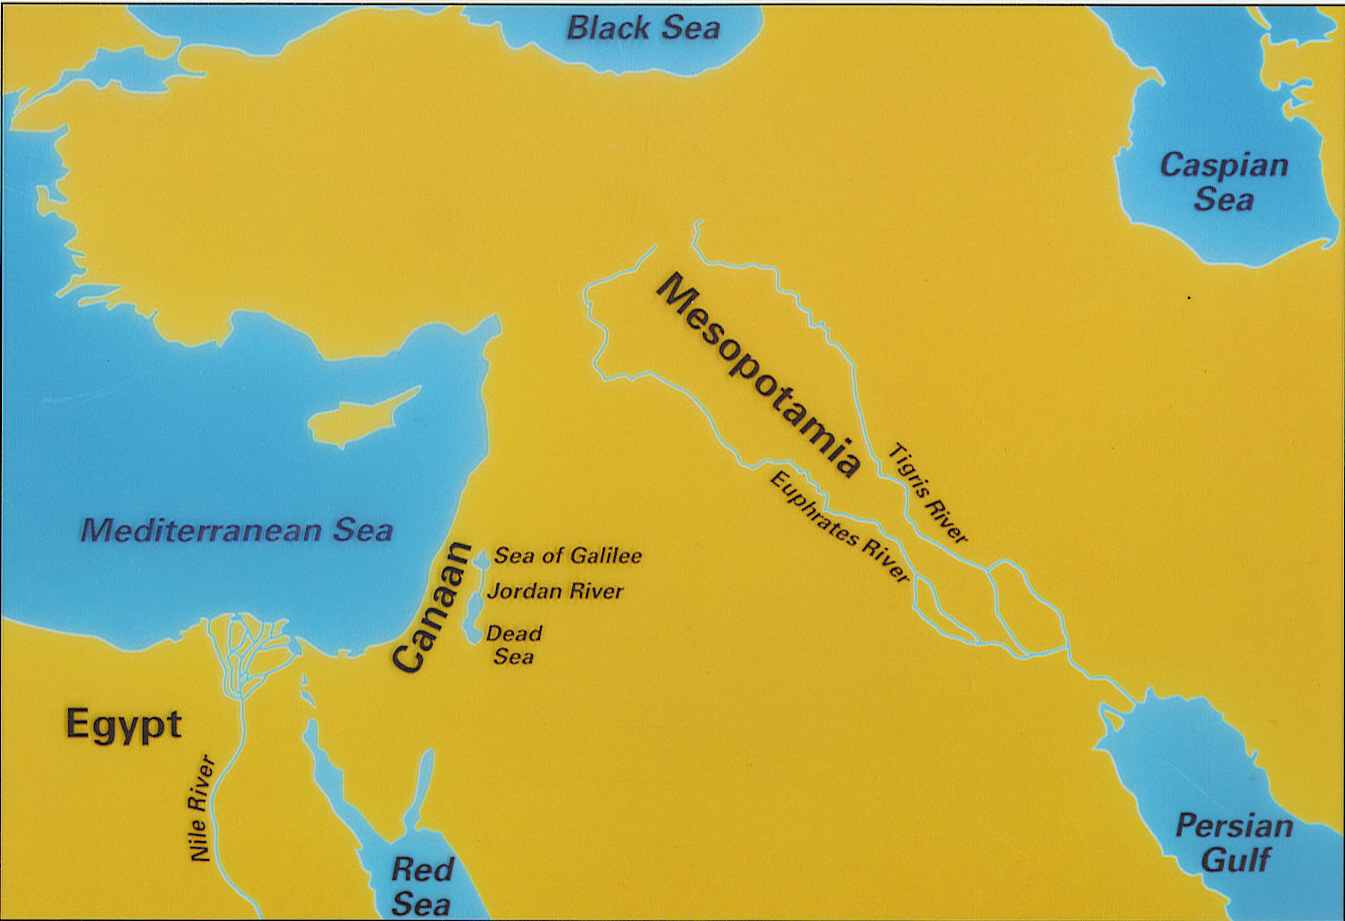 egypt mesopotamia Free essay: egypt developed around the nile river, while mesopotamia developed between the tigris and euphrates rivers egypt and mesopotamia grew into.